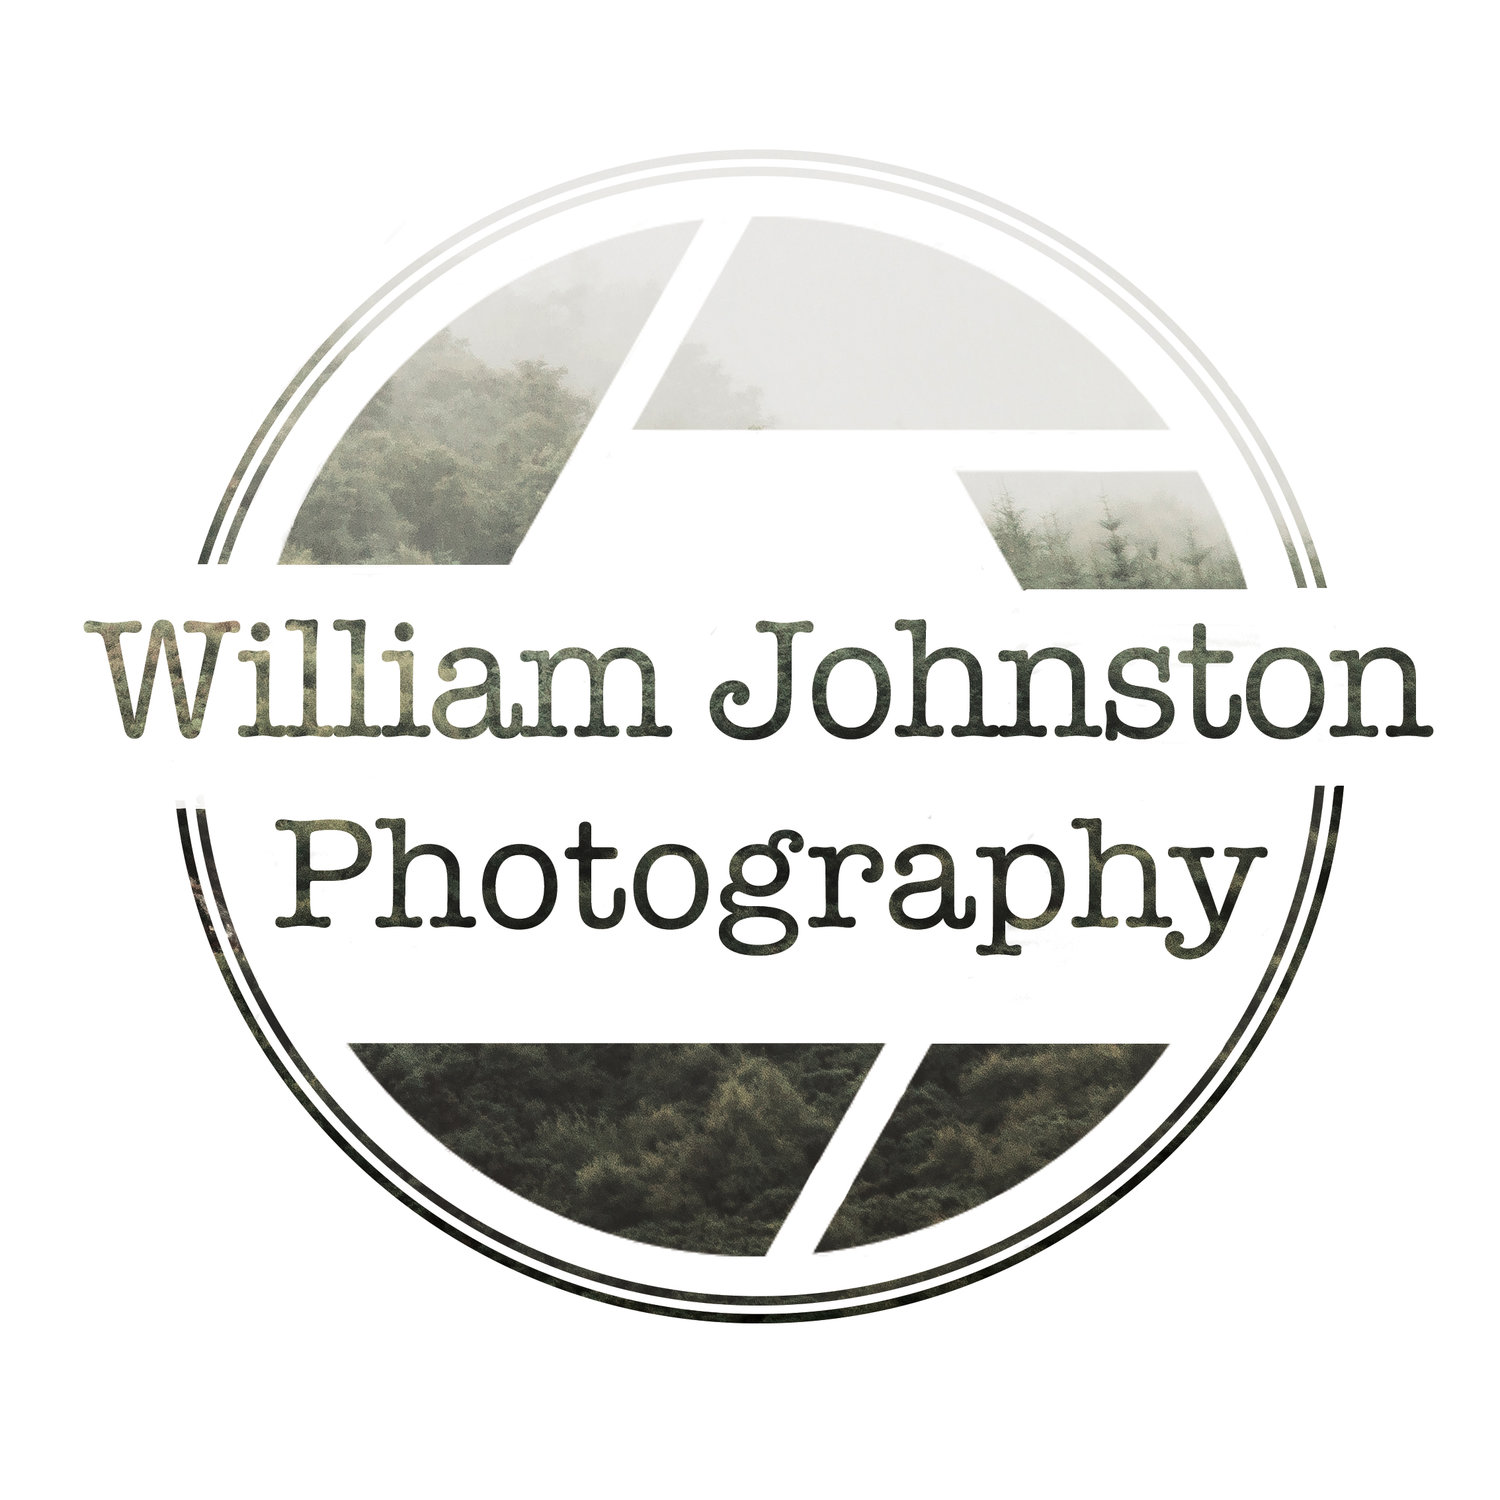 William Johnston Photography